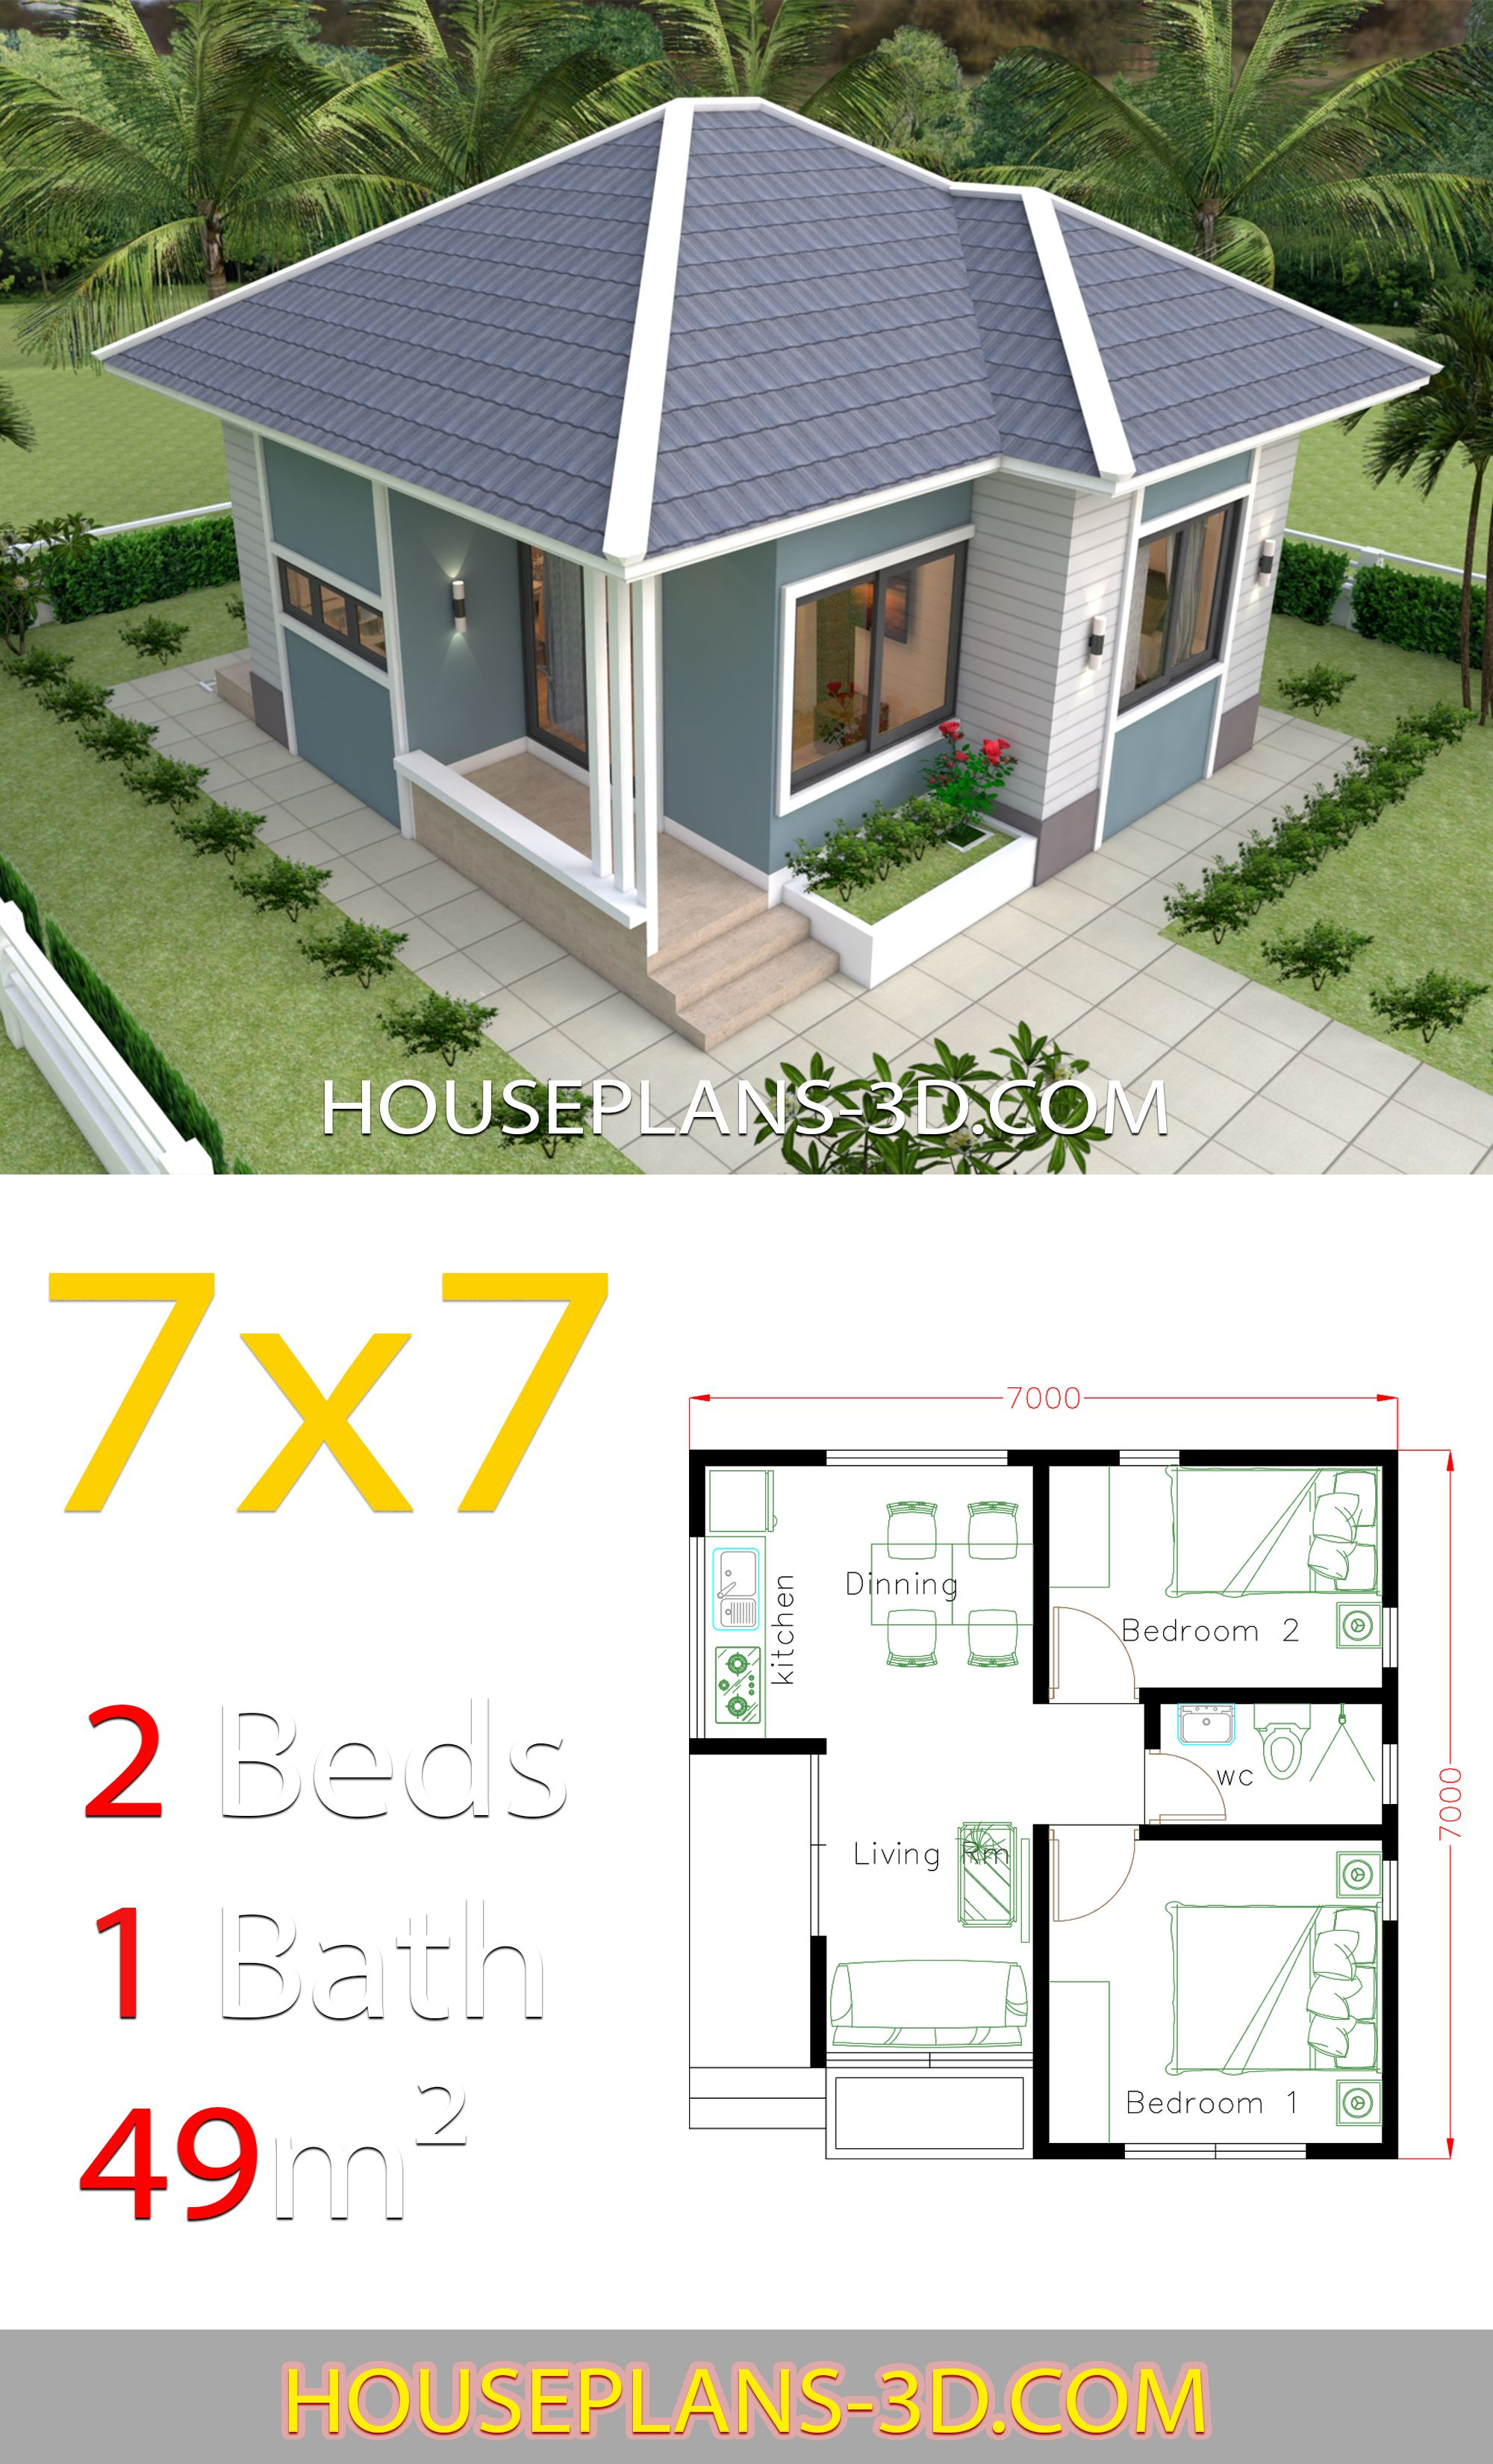 House Design 7x7 With 2 Bedrooms Full Plans House Plans 3d Small House Design Plans House Plans Tiny House Design